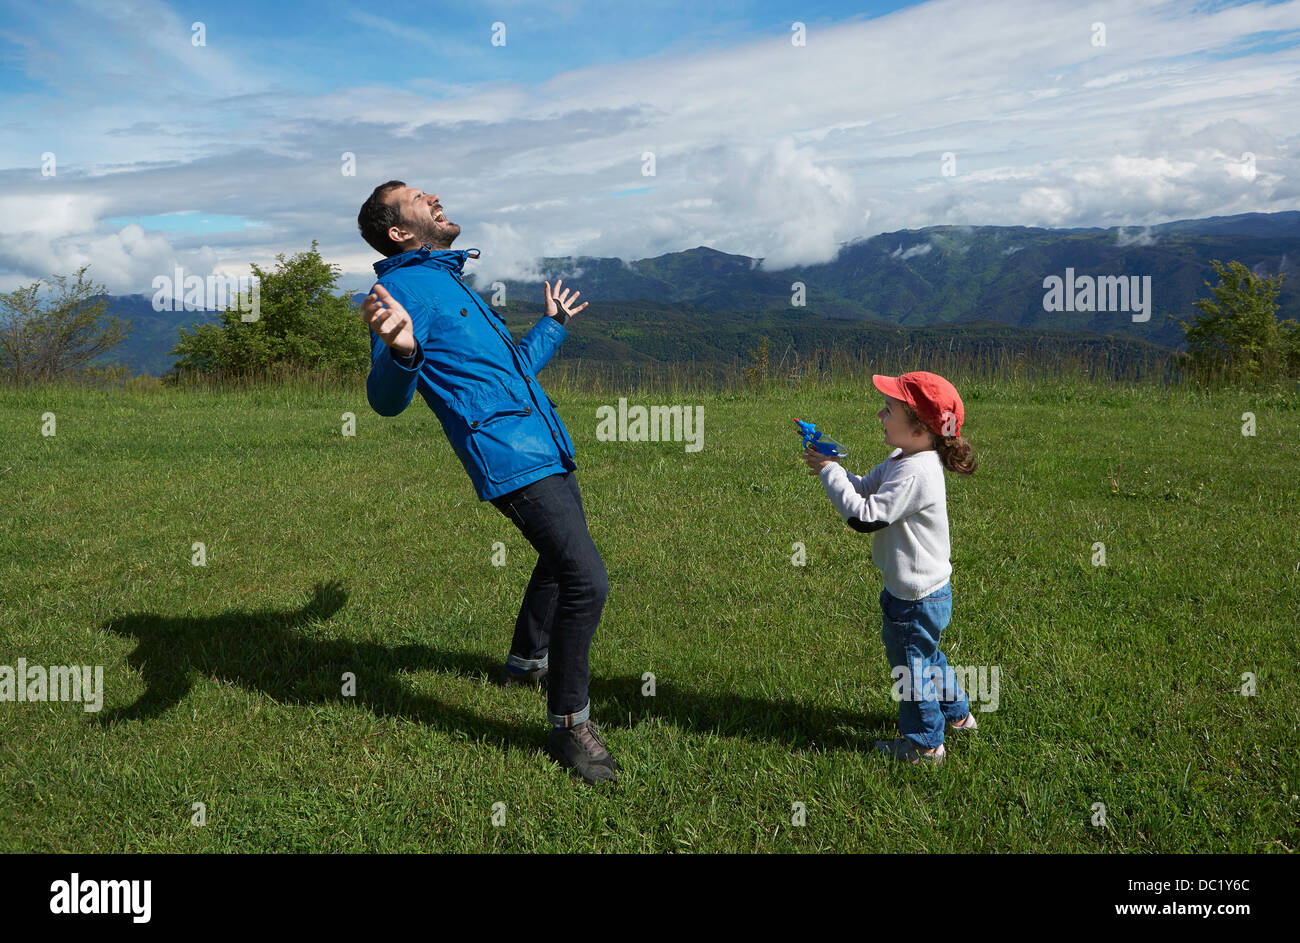 Father and young daughter play acting with toy gun Stock Photo